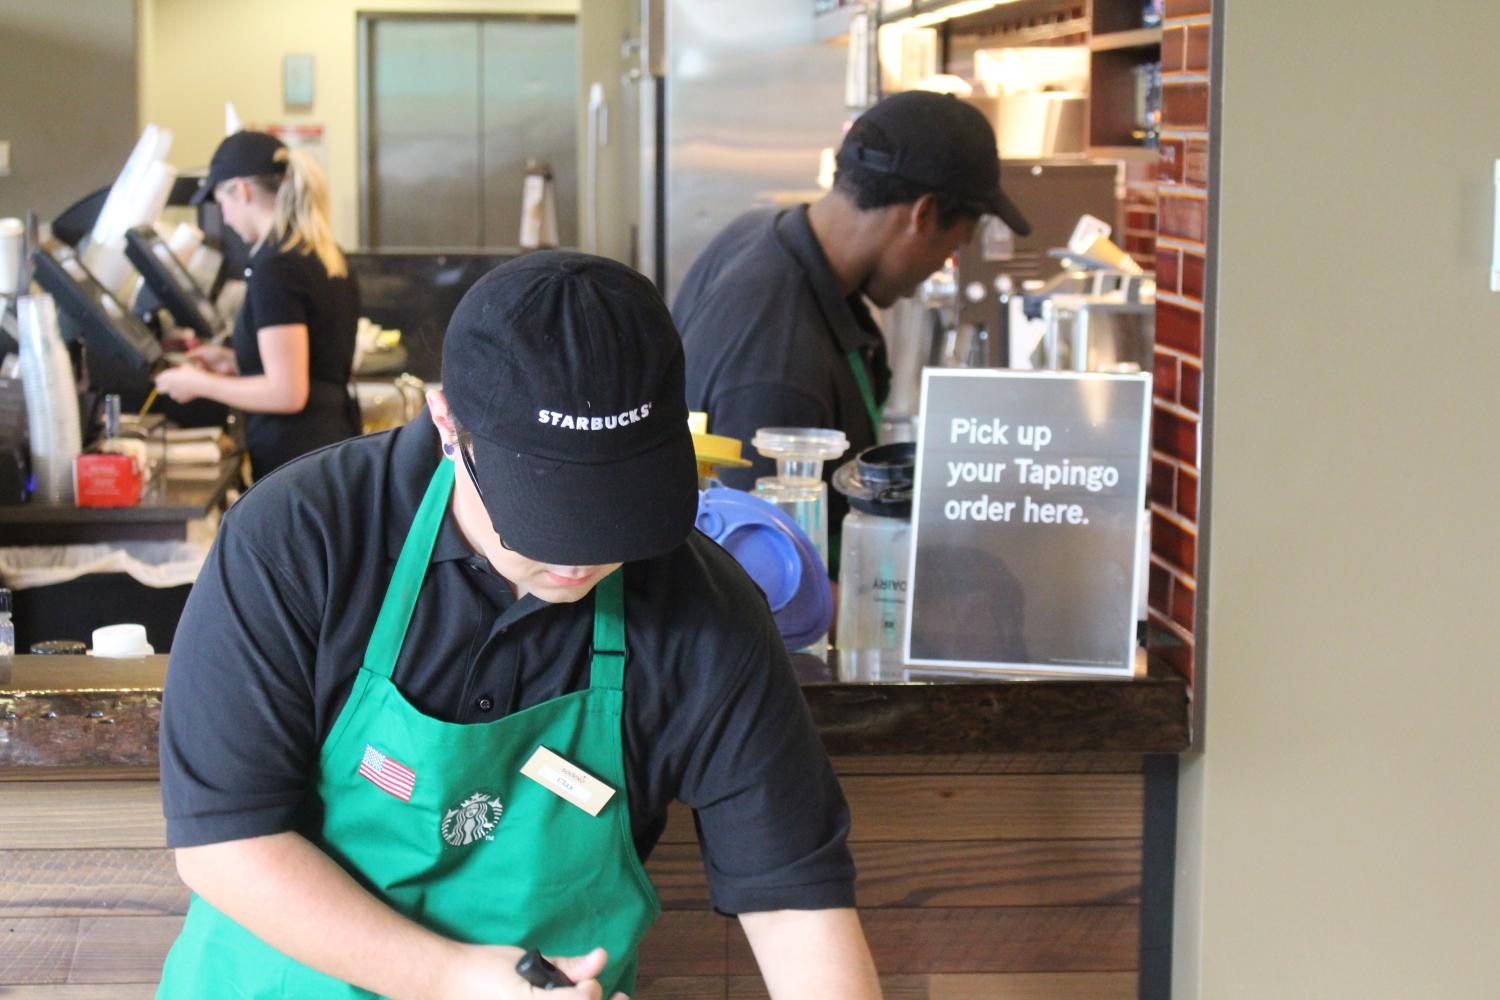 Sophomore social work major Clay Davis sweeps in front of the Tapingo pick-up counter at Starbucks. Tapingo is expected to bring delivery to the university in the fall of 2018